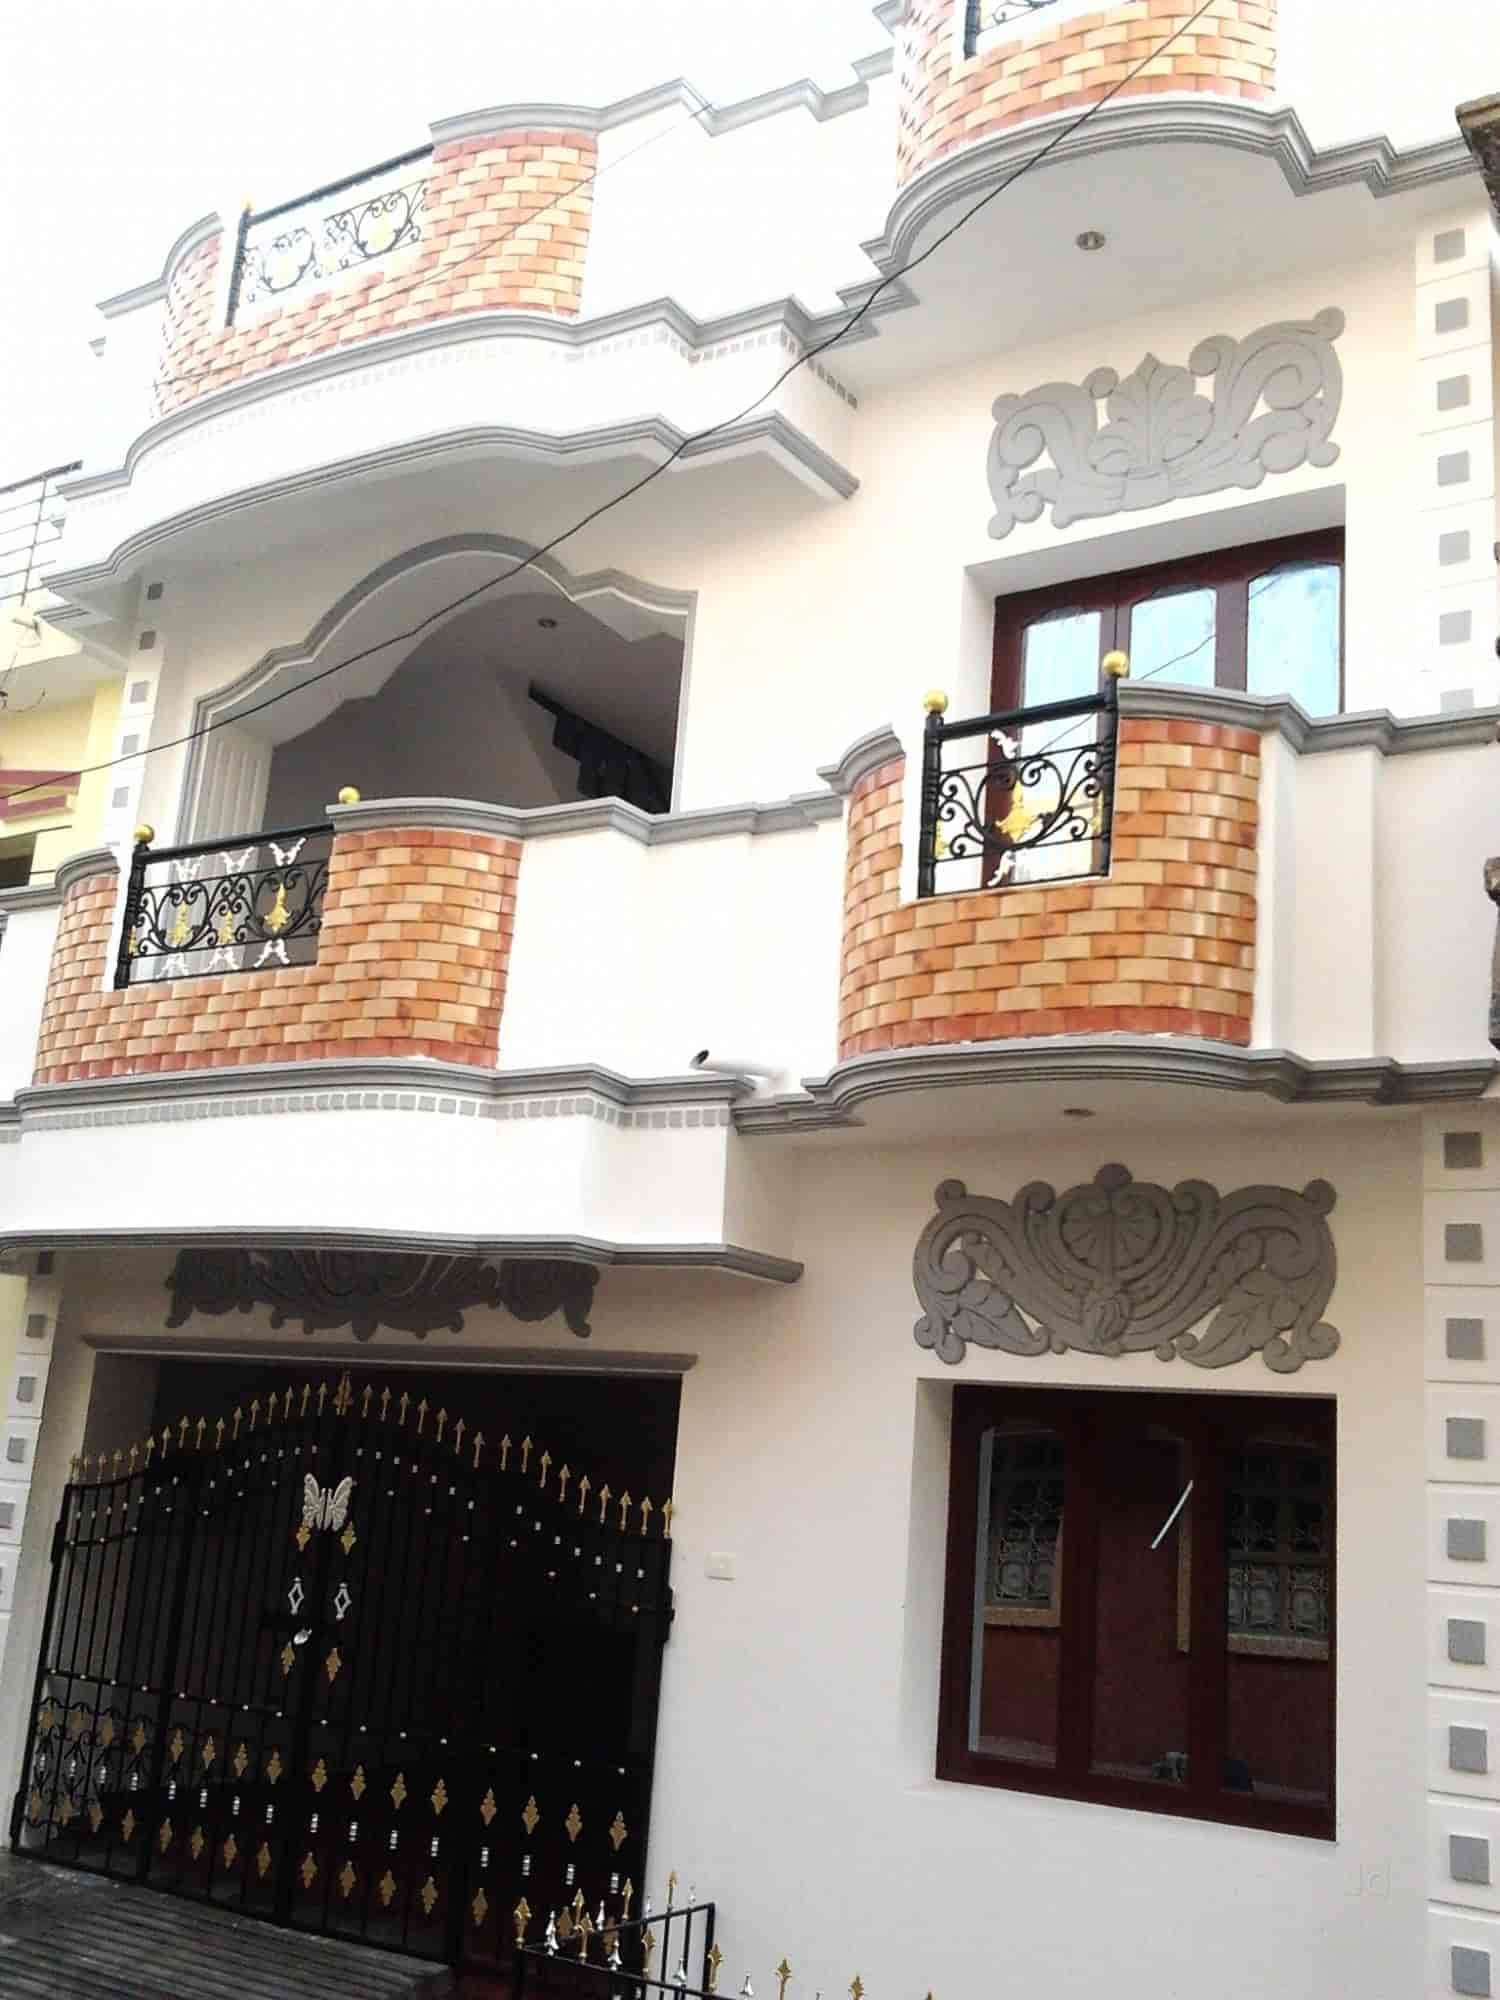 Wg Builders jb builders photos pondicherry pictures images gallery justdial